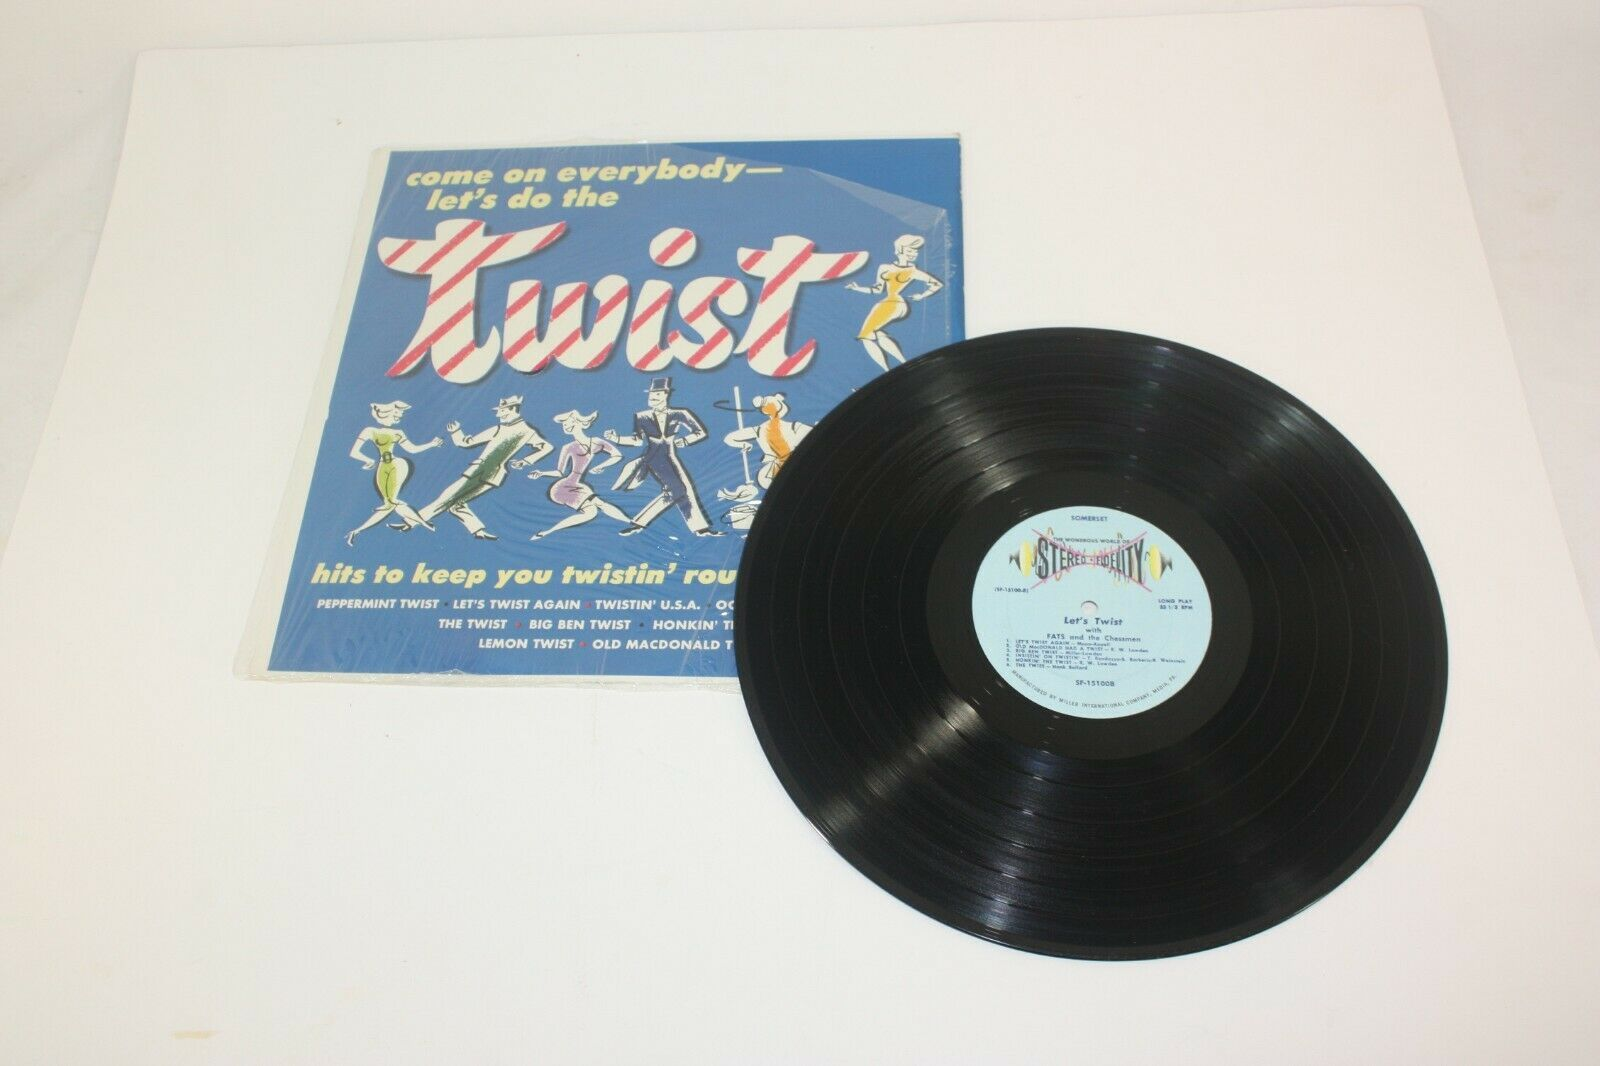 Come On Everybody Let's Do The Twist LP Vintage Dance Record Somerset SF-15100